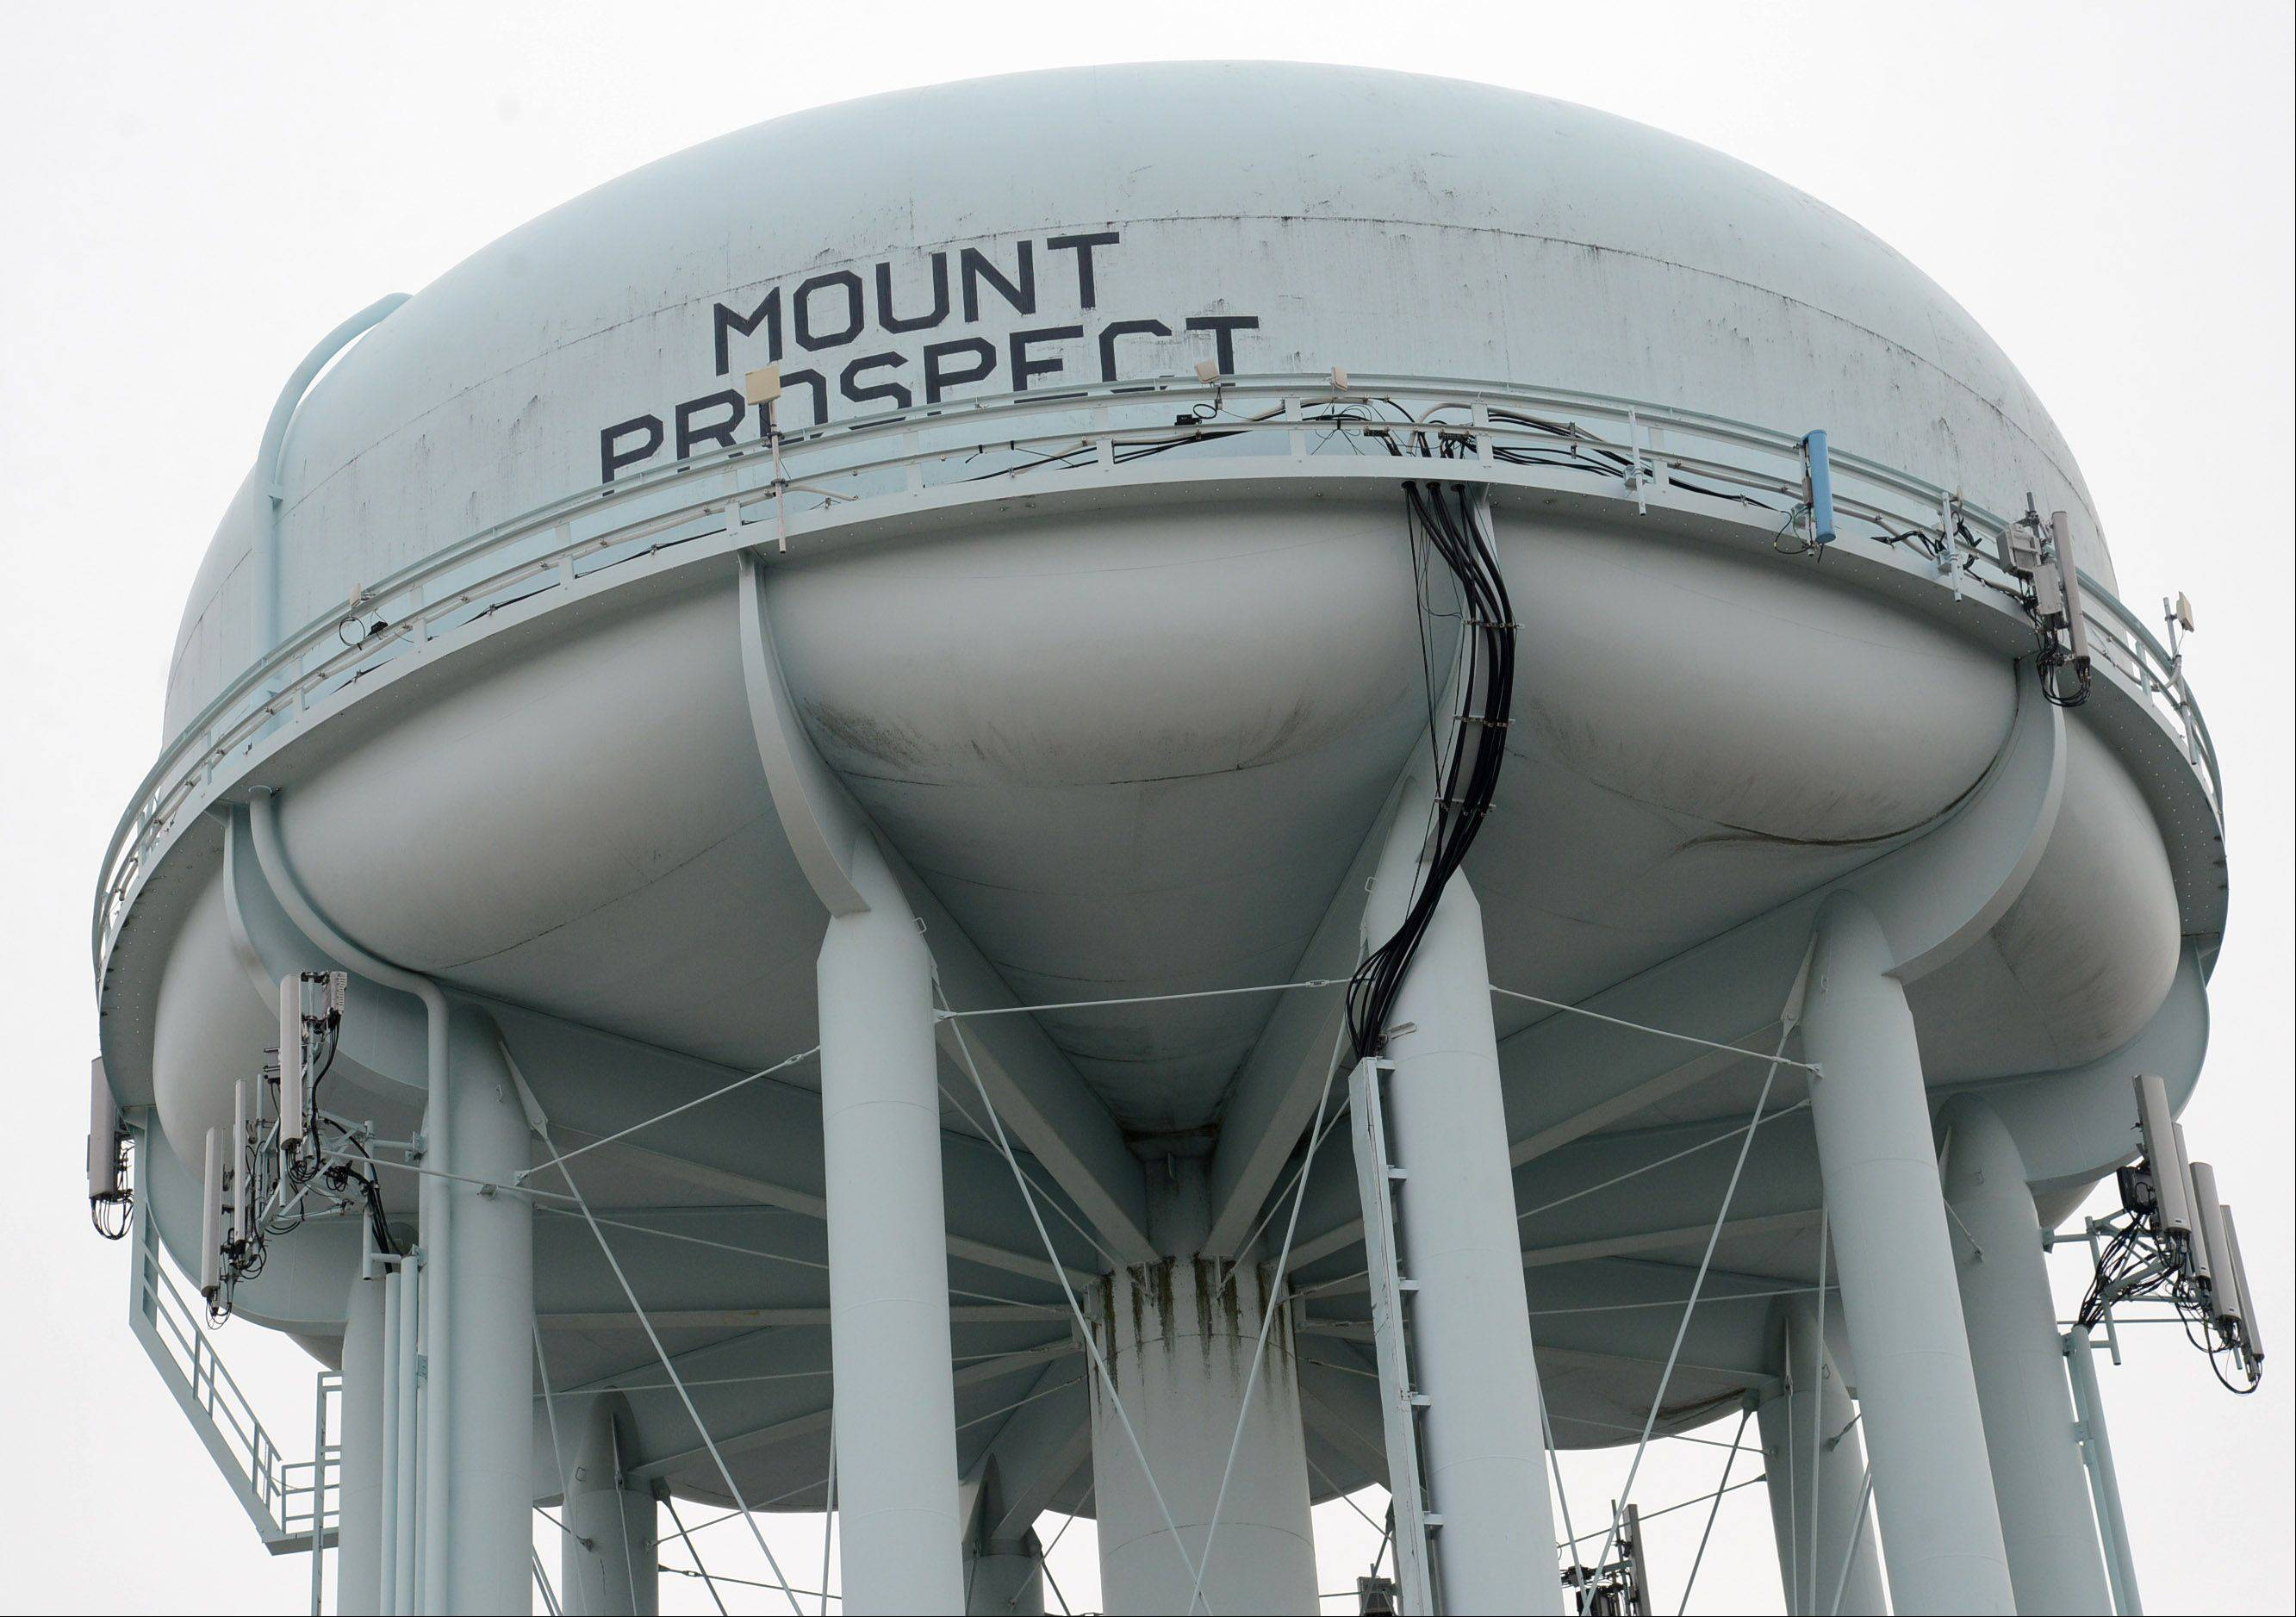 Mount Prospect trustees have approved spending $590,000 to repaint this water tower on Northwest Highway next year.